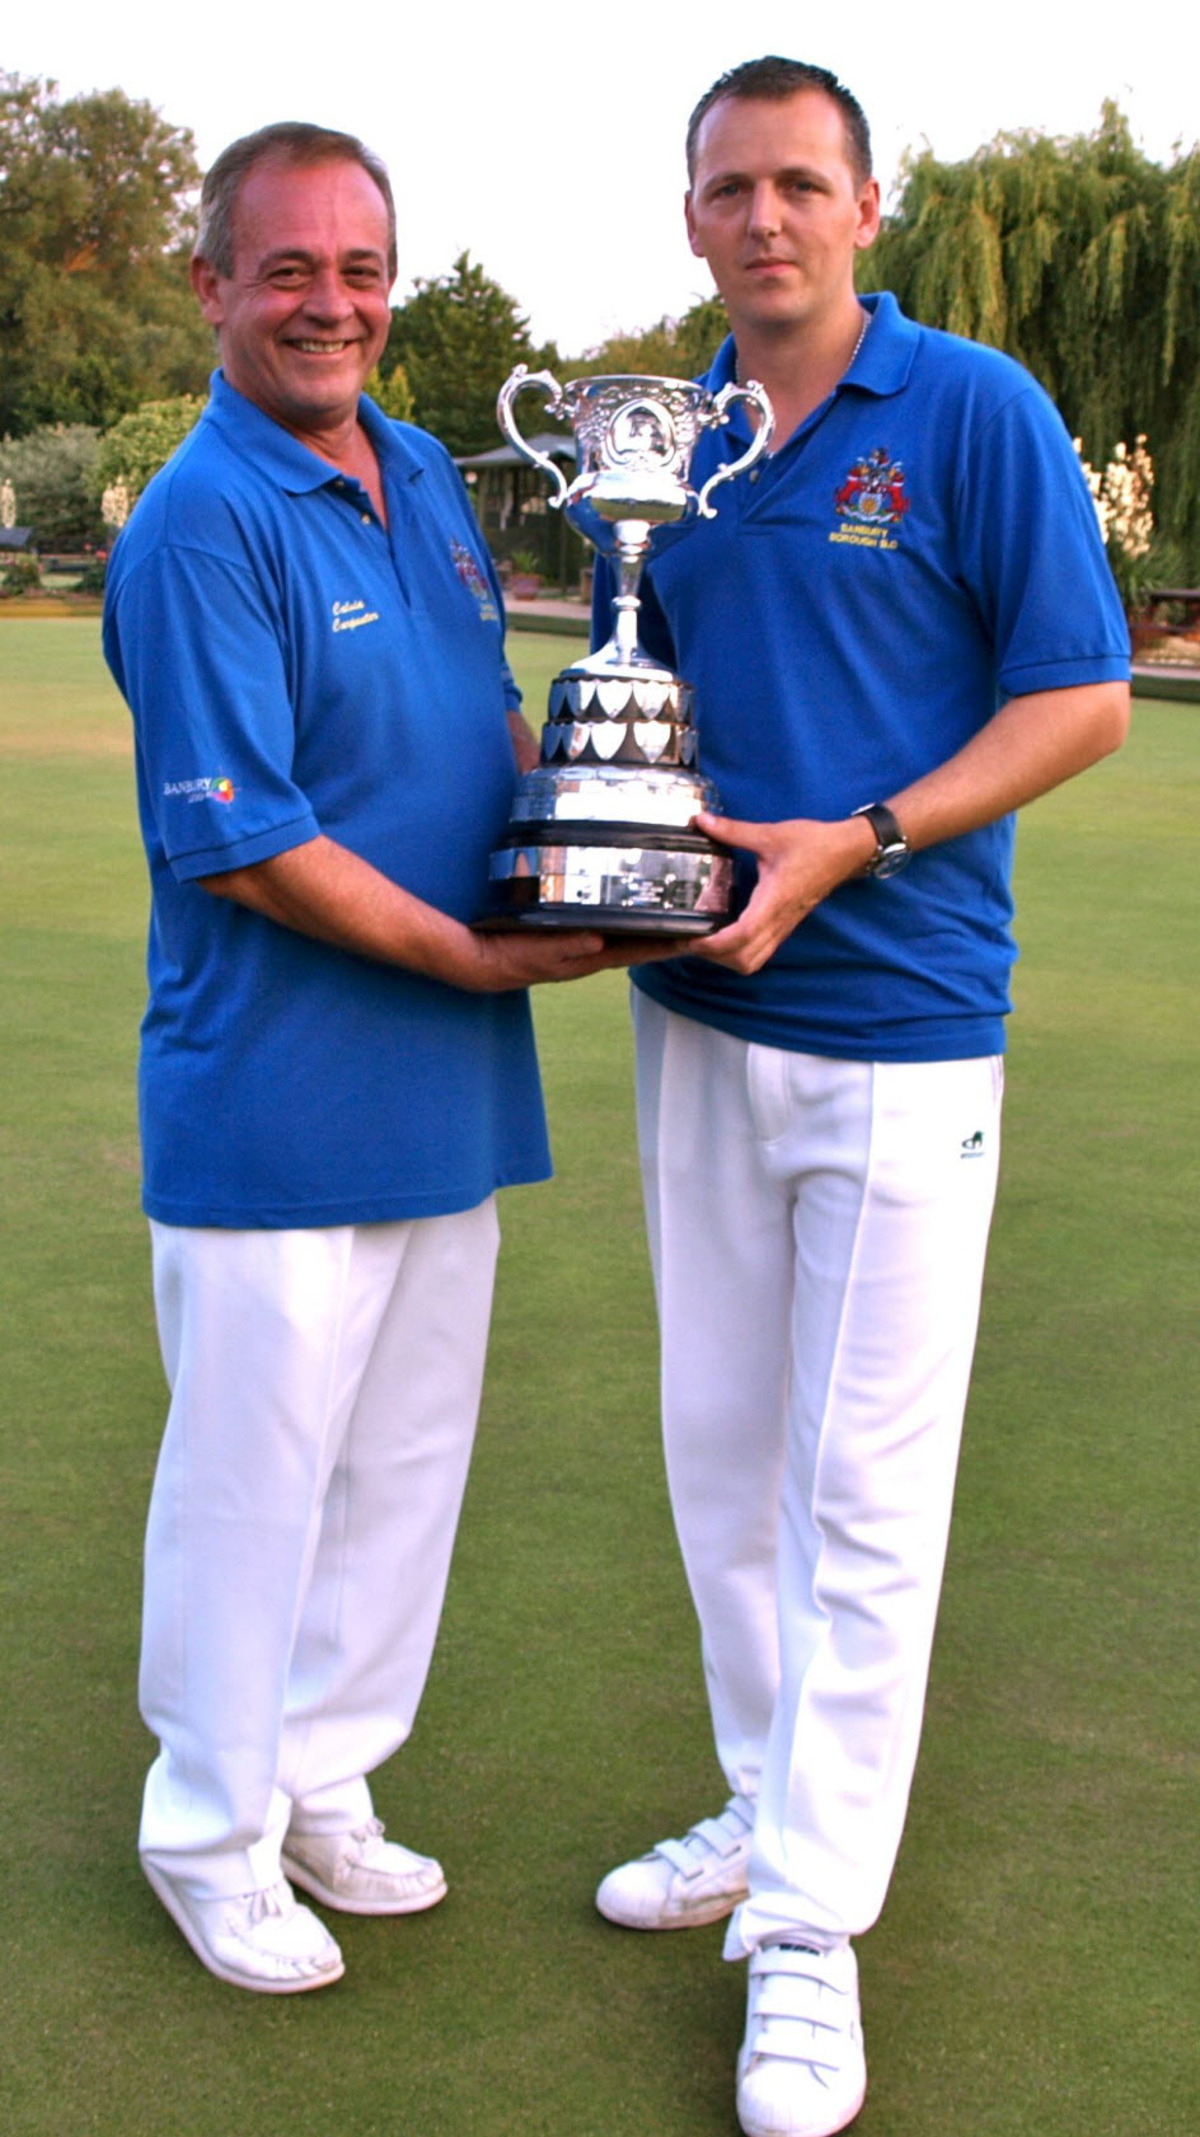 Banbury Borough's Calvin Carpenter (left) and AJ Docherty with the Oxfordshire pairs trophy